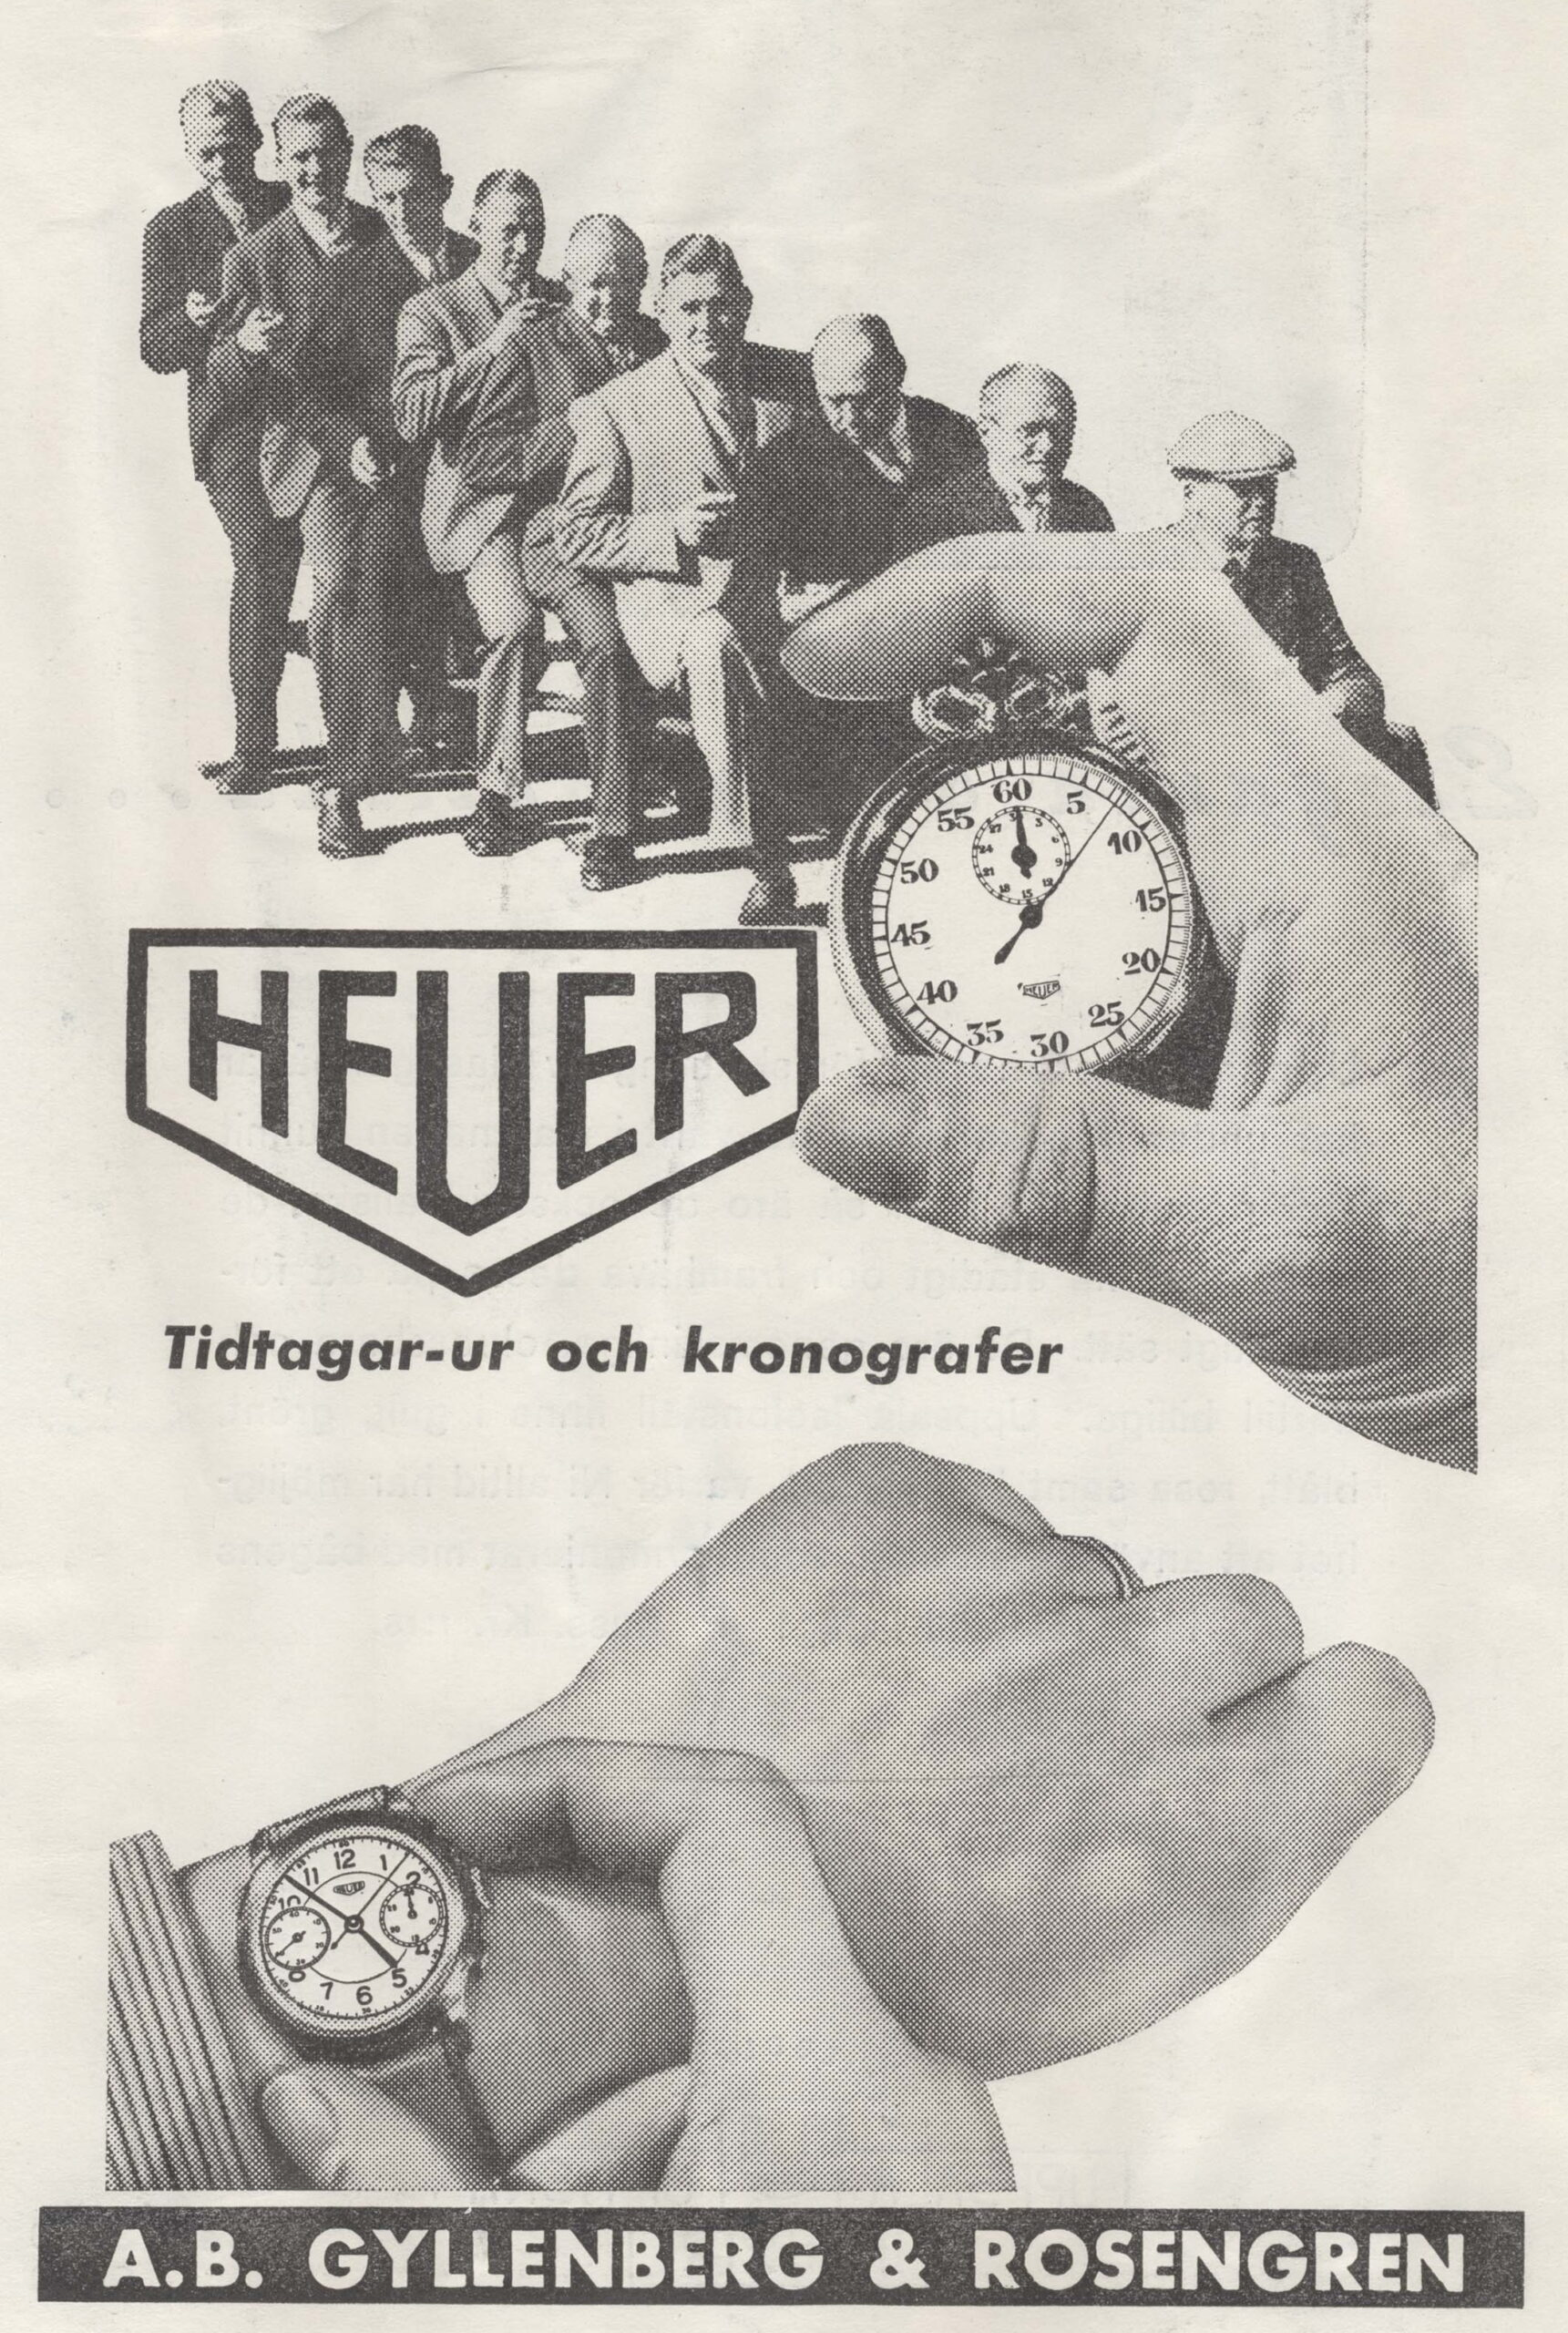 Heuer advert for chronographs from 1941